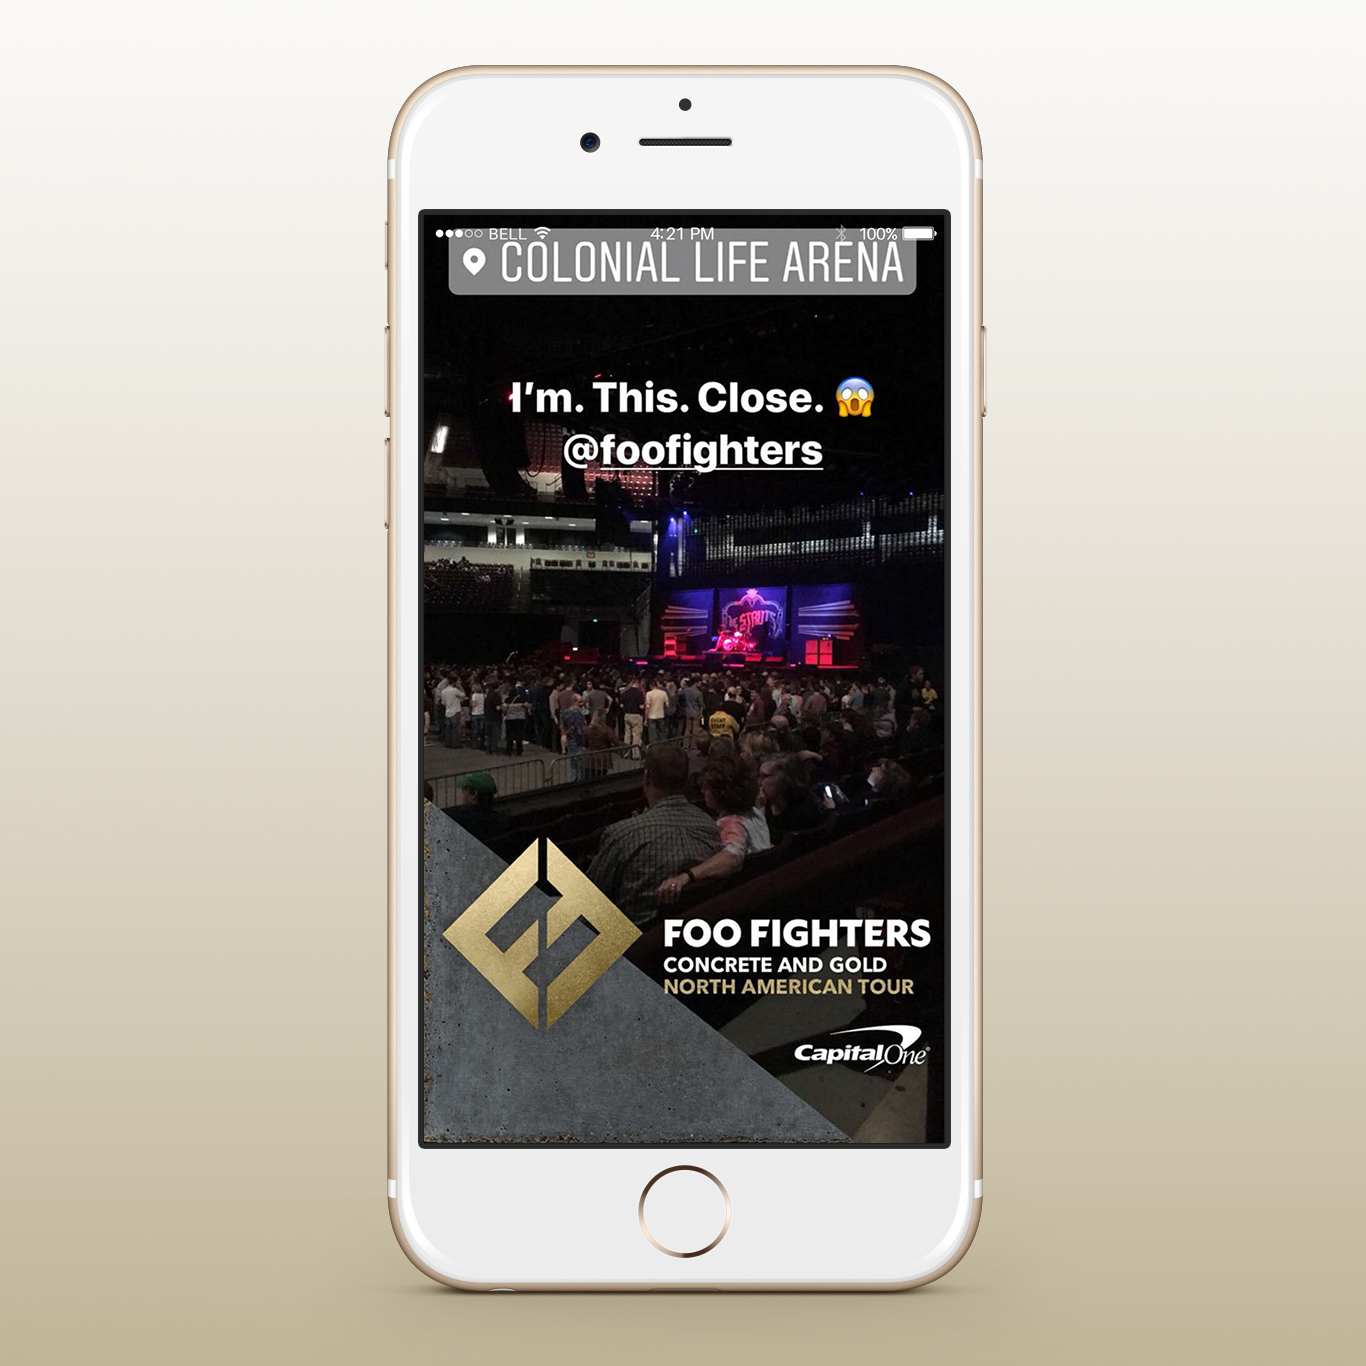 Foo Fighters Concrete Gold Tour Snapchat Filters - Final